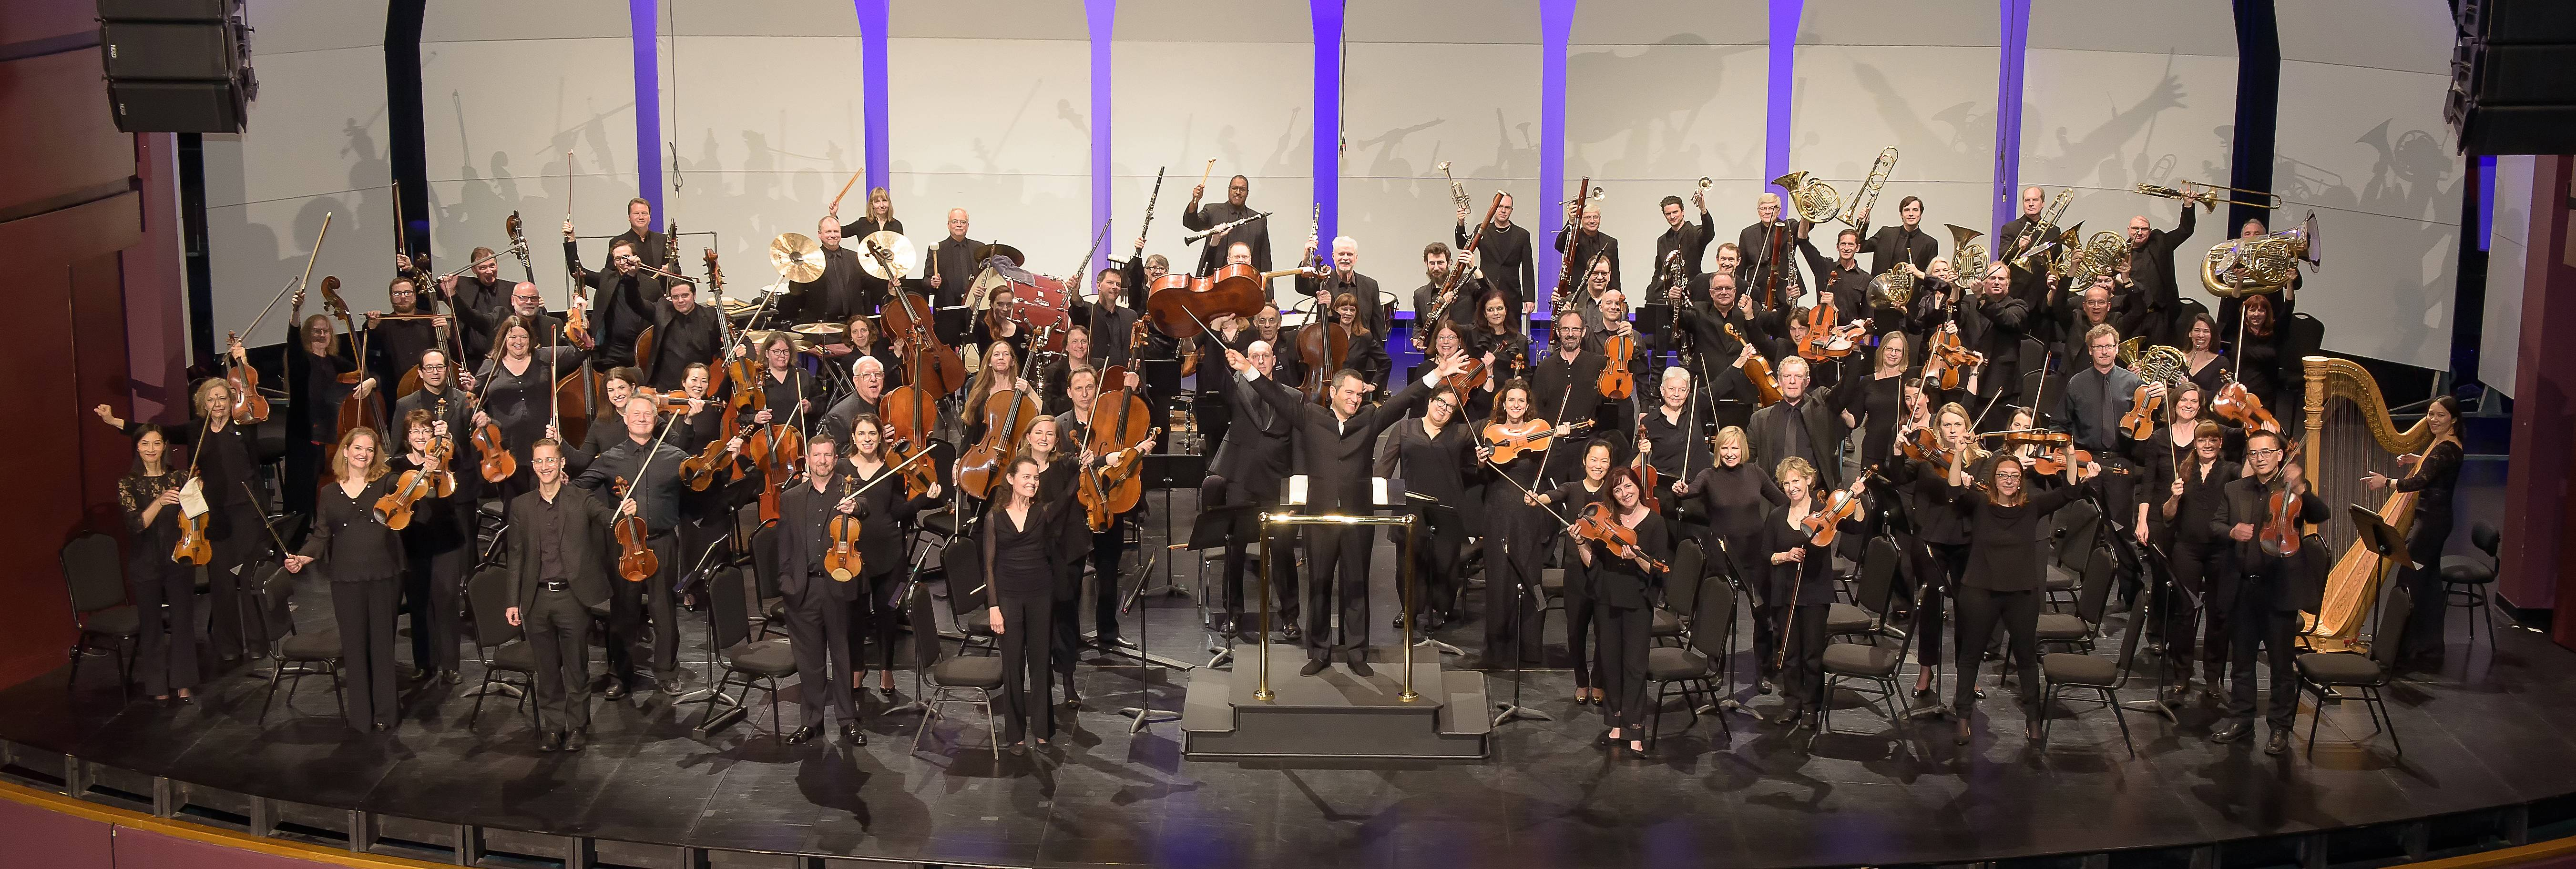 "The Elgin Symphony Orchestra is offering free tickets to furloughed federal government workers to attend their 7:30 p.m. Saturday, Jan. 12 or 2:30 p.m. Sunday, Jan. 13 concerts, ""Haydn's Surprise Symphony,"" at Hemmens Cultural Center in Elgin."